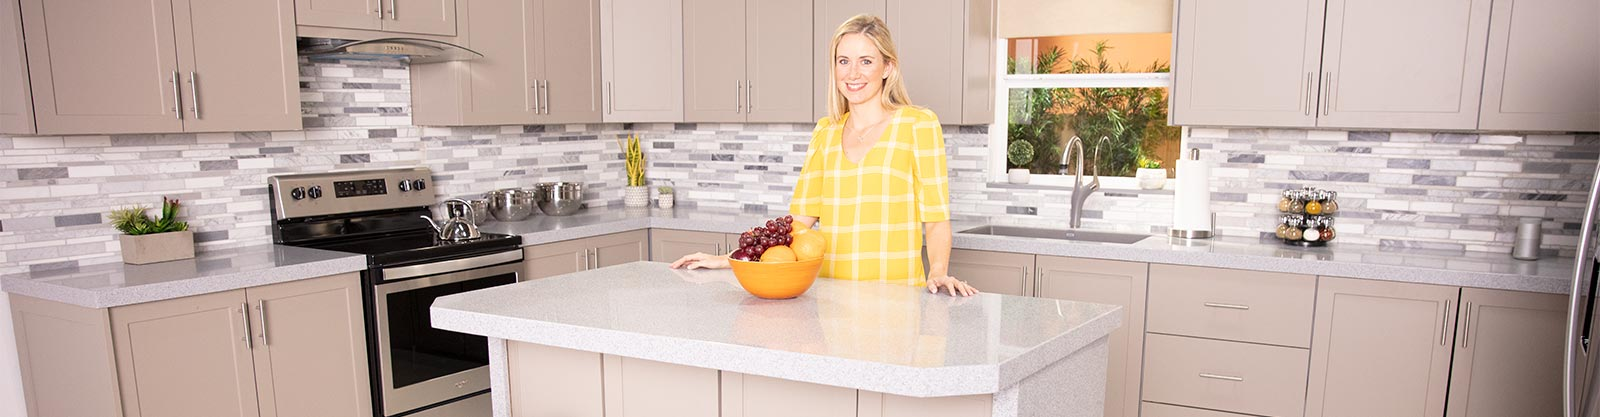 Woman in a yellow shirt standing in a modern kitchen with beige cabinets and white, speckled countertops.